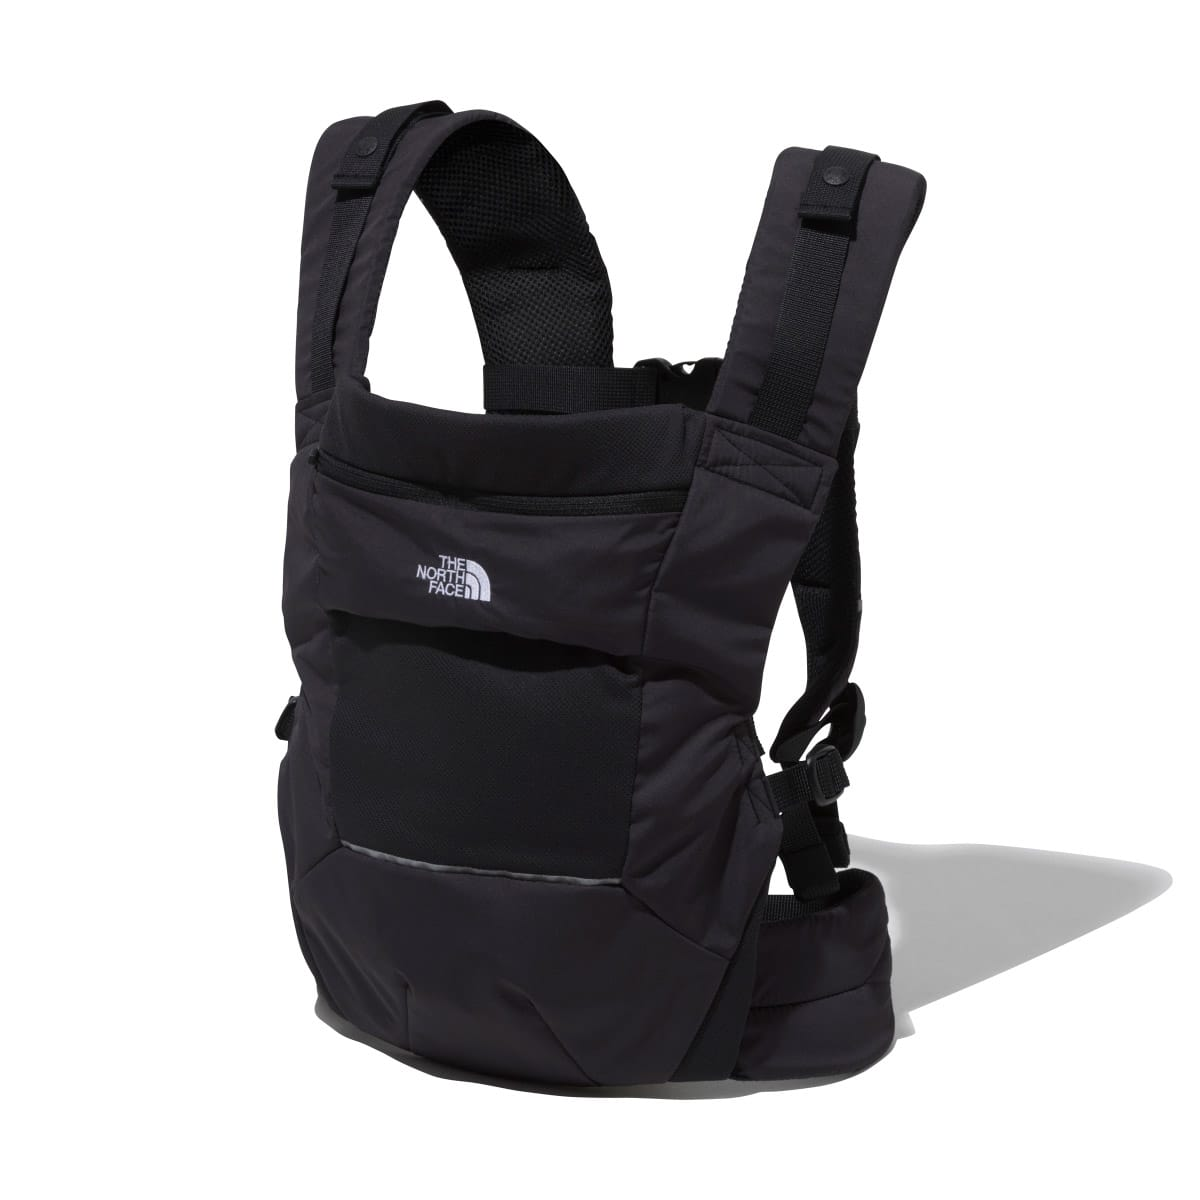 The North Face Baby Compact Carrier